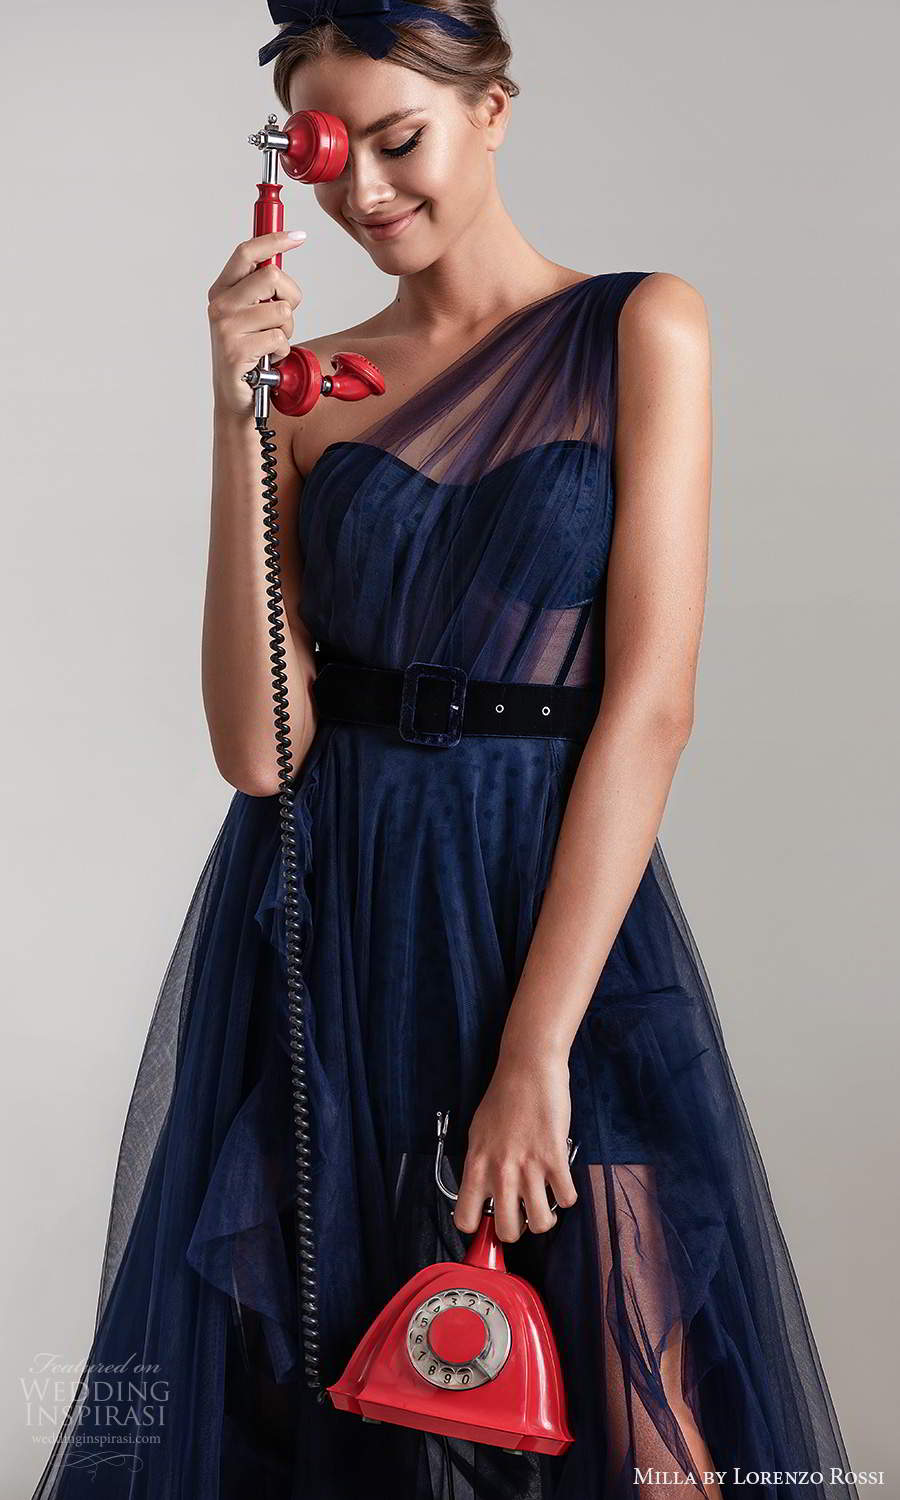 milla by lorenzo rossi 2020 rtw one shoulder semi sweetheart neckline ruched bodice a line ball gown wedding dress chapel train navy blue (8) zv